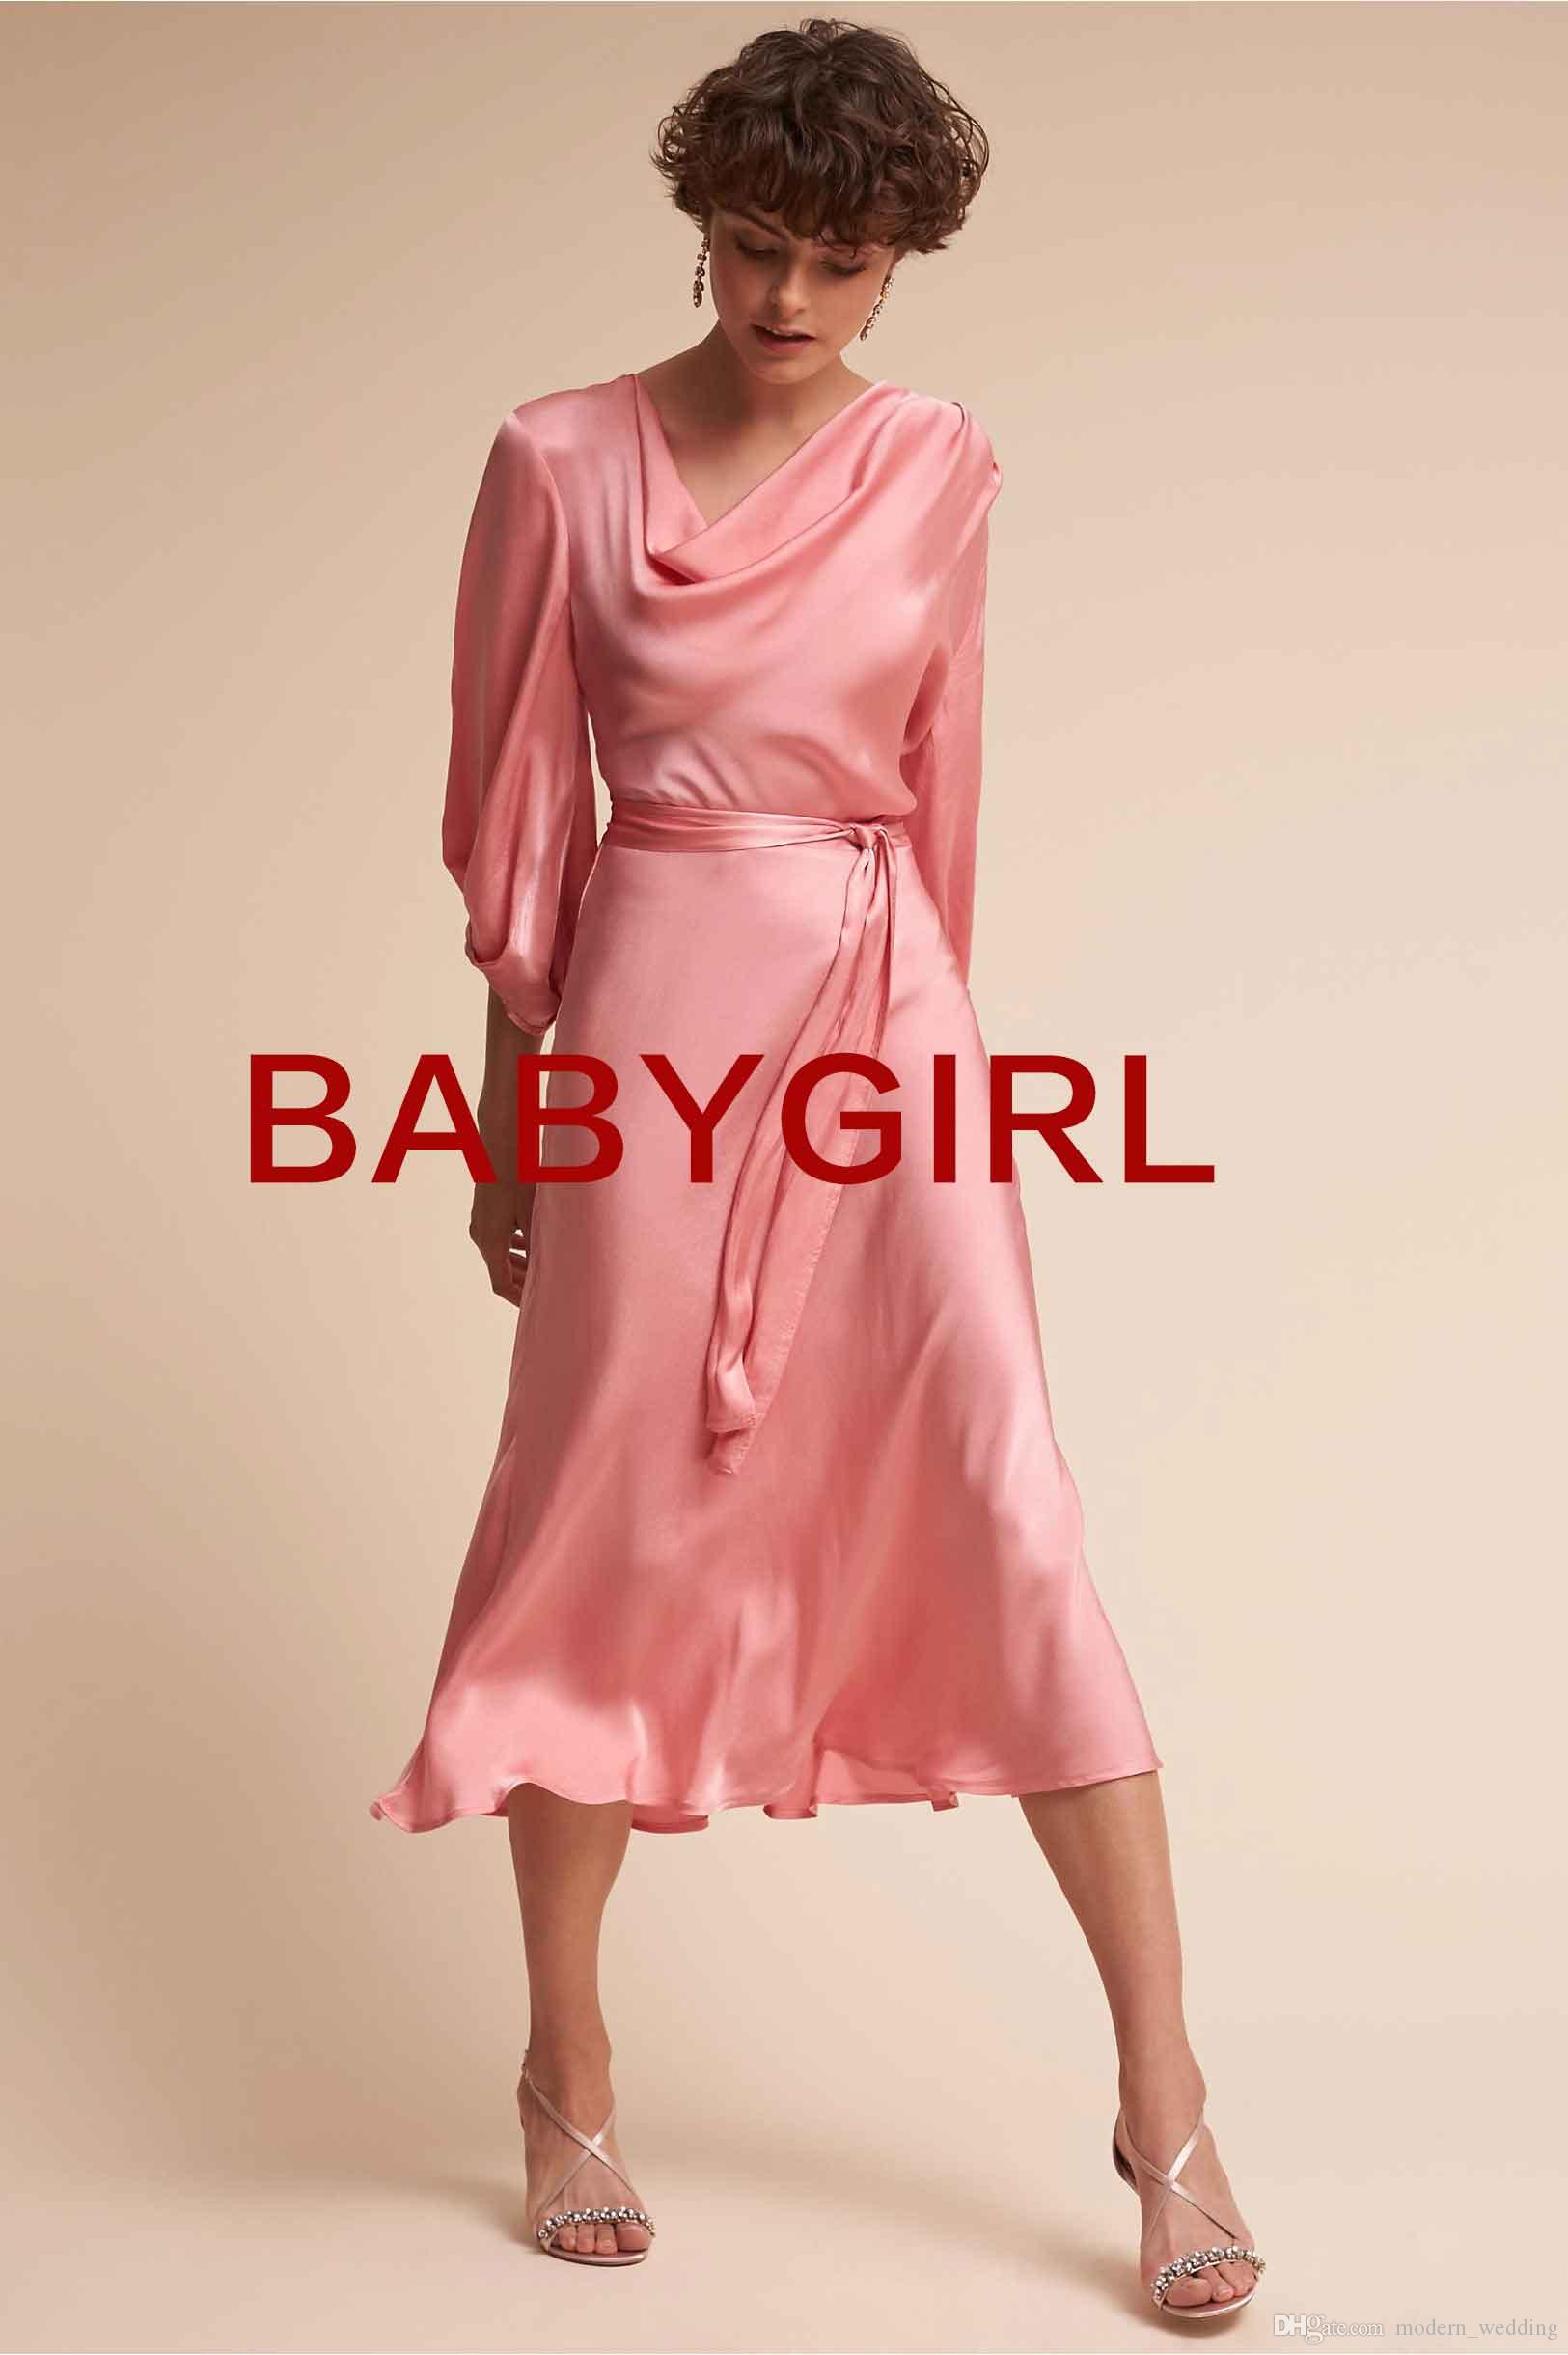 Custom made jewel long sleeve cowl neck dress tea length a bias custom made jewel long sleeve cowl neck dress tea length a bias cut skirt for plenty of movement bridesmaid dress bridesmaid dress stores bridesmaid dresse ombrellifo Image collections